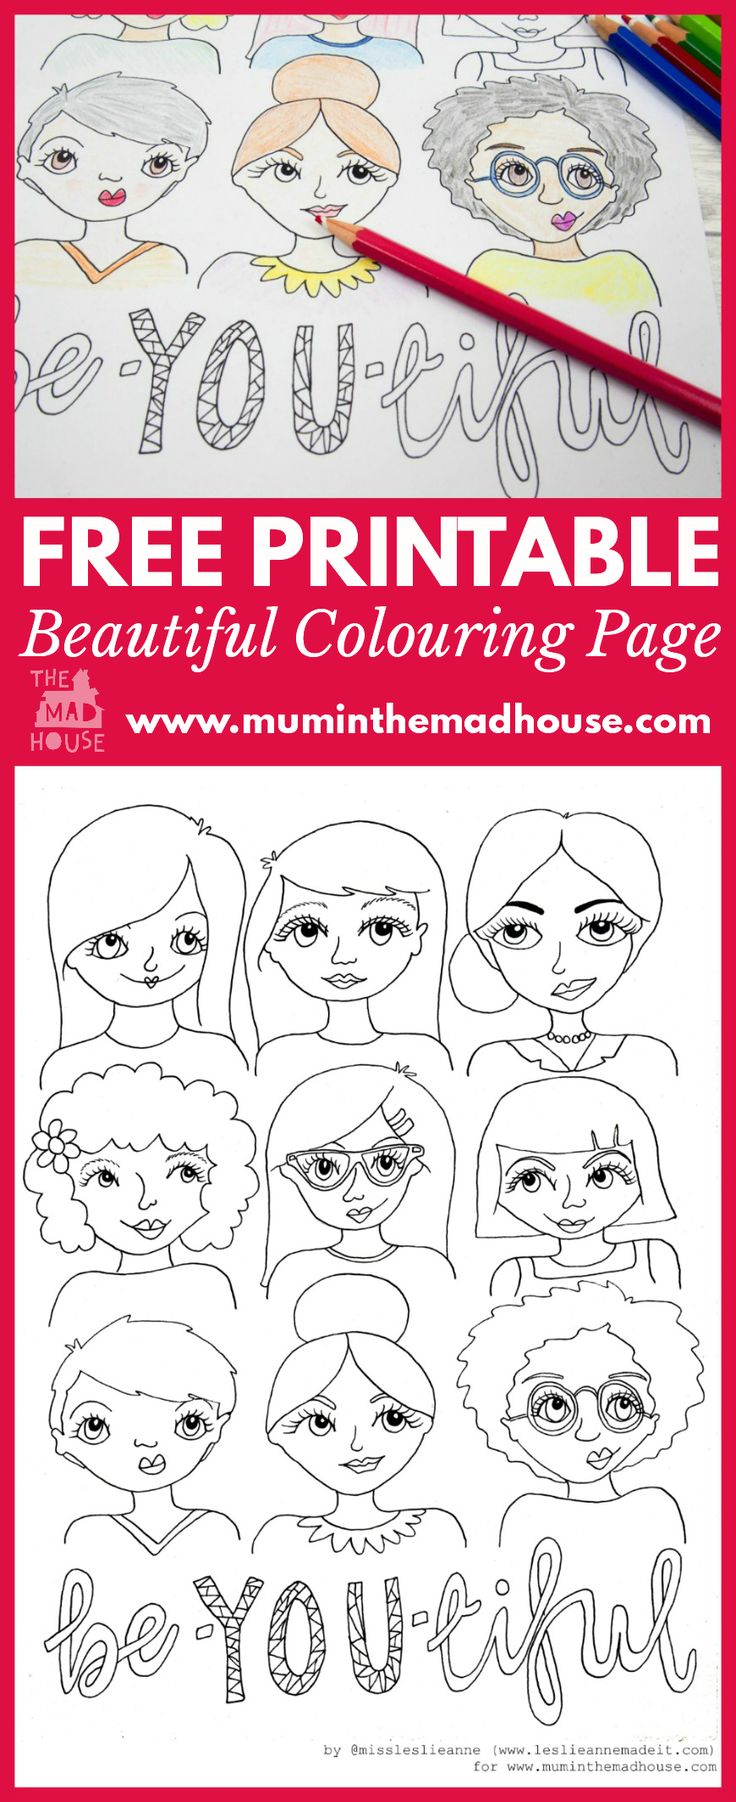 Free printable coloring pages for adults only free printable coloring pages for adults only 41 - Free Be Beautiful Colouring Page Free Colouring Pagesrandom Drawingsadult